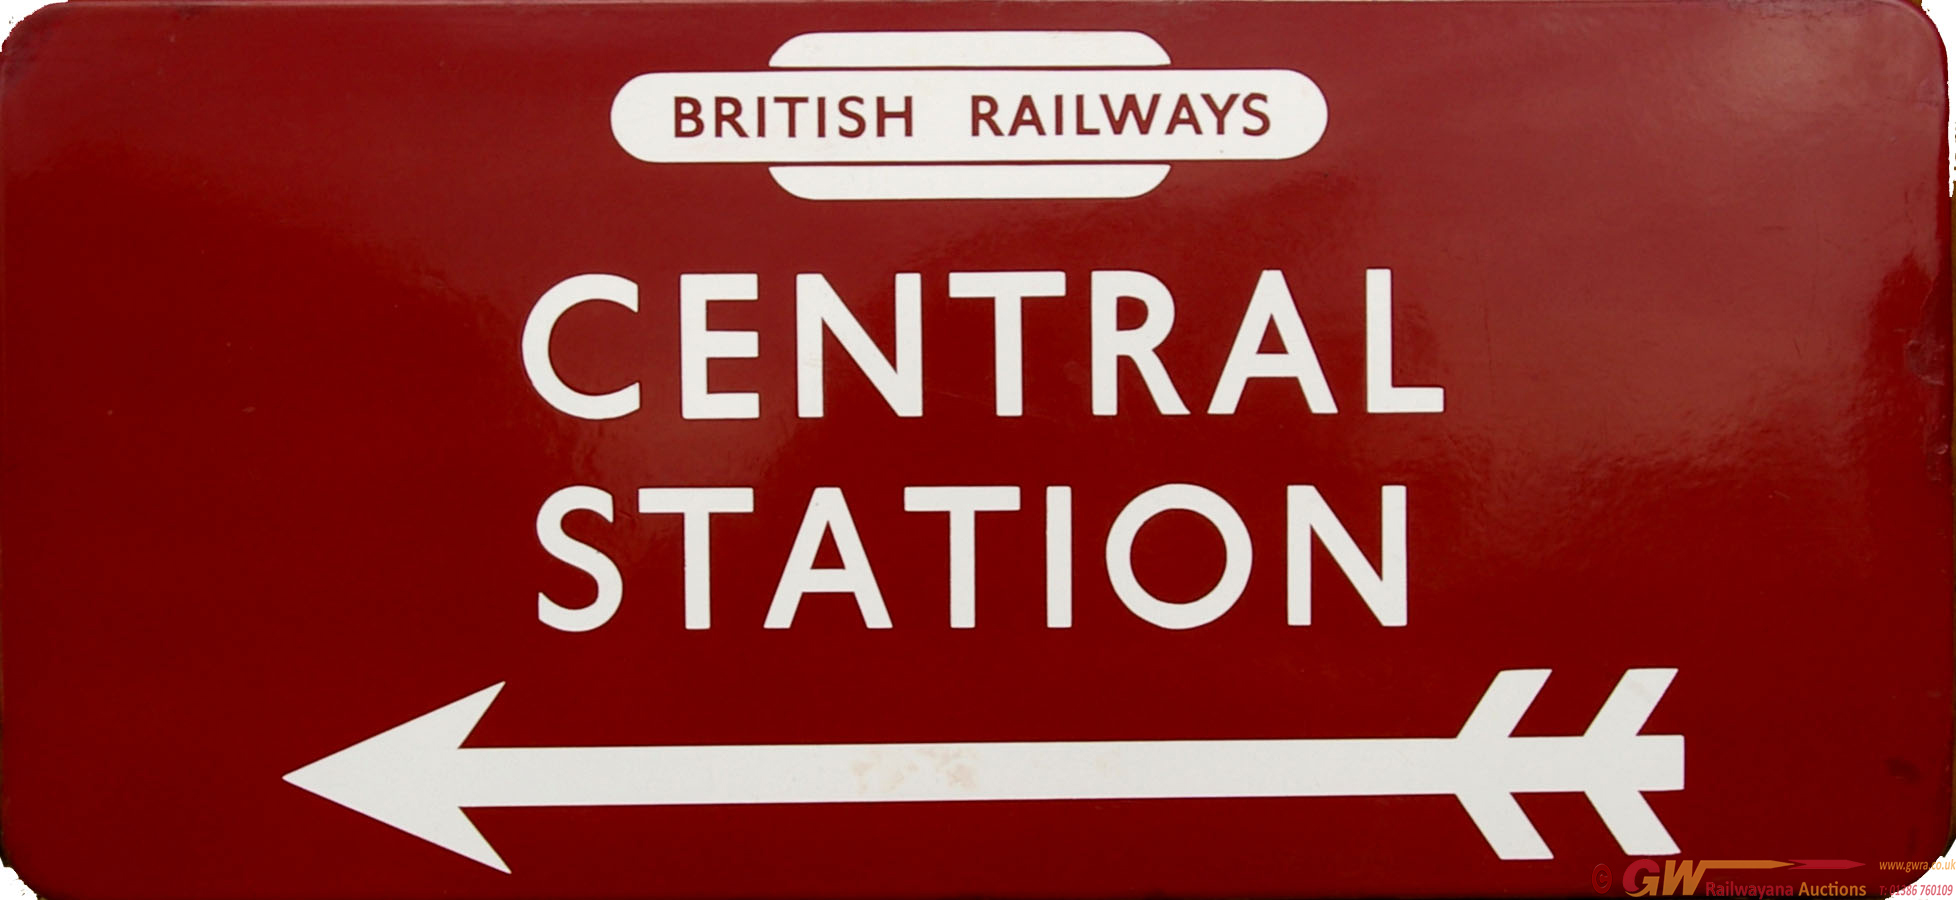 Station Direction Sign, British Railways CENTRAL